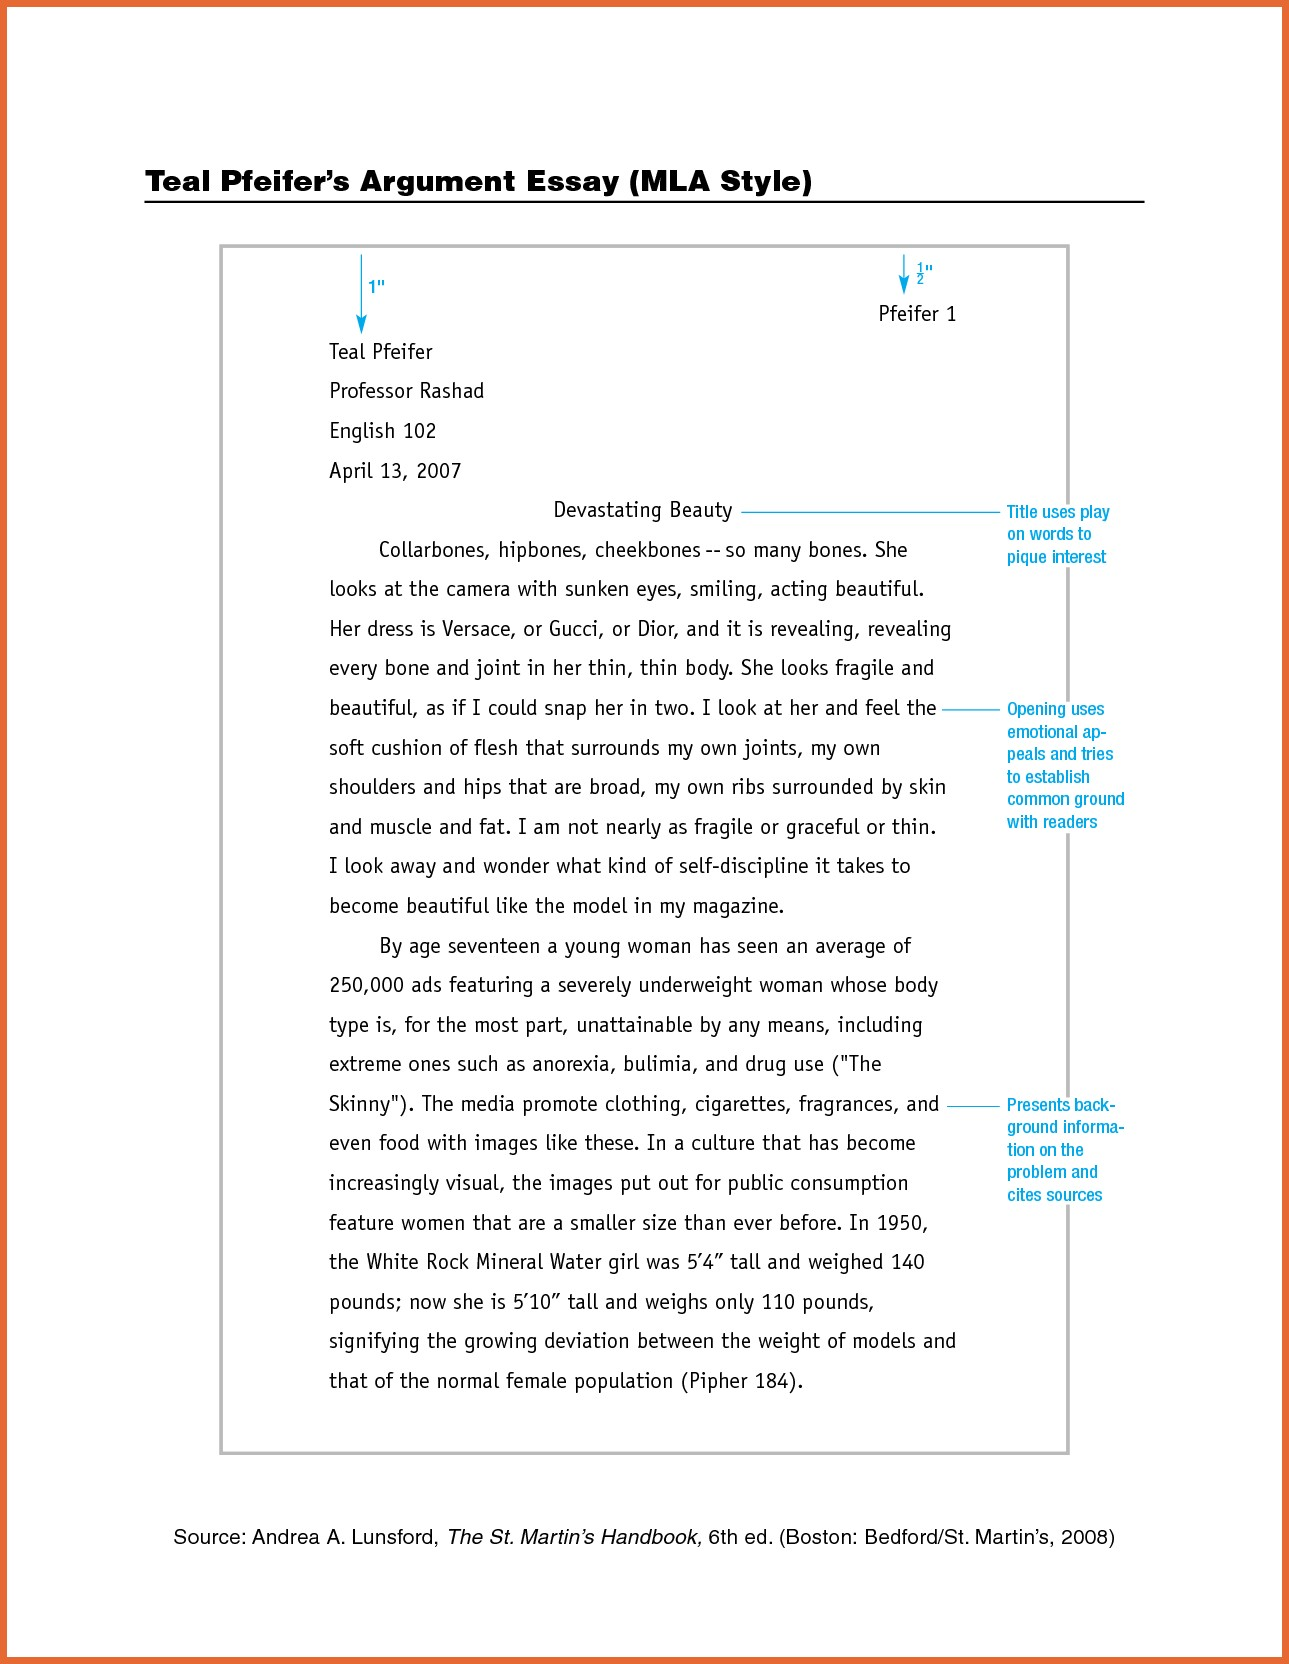 005 Essay Example What Is Mla Format For Essays Title Page Fresh Of An Goal How To Your Paper In Goodwi My Style With Word Narrative Unique Proper 8 Full